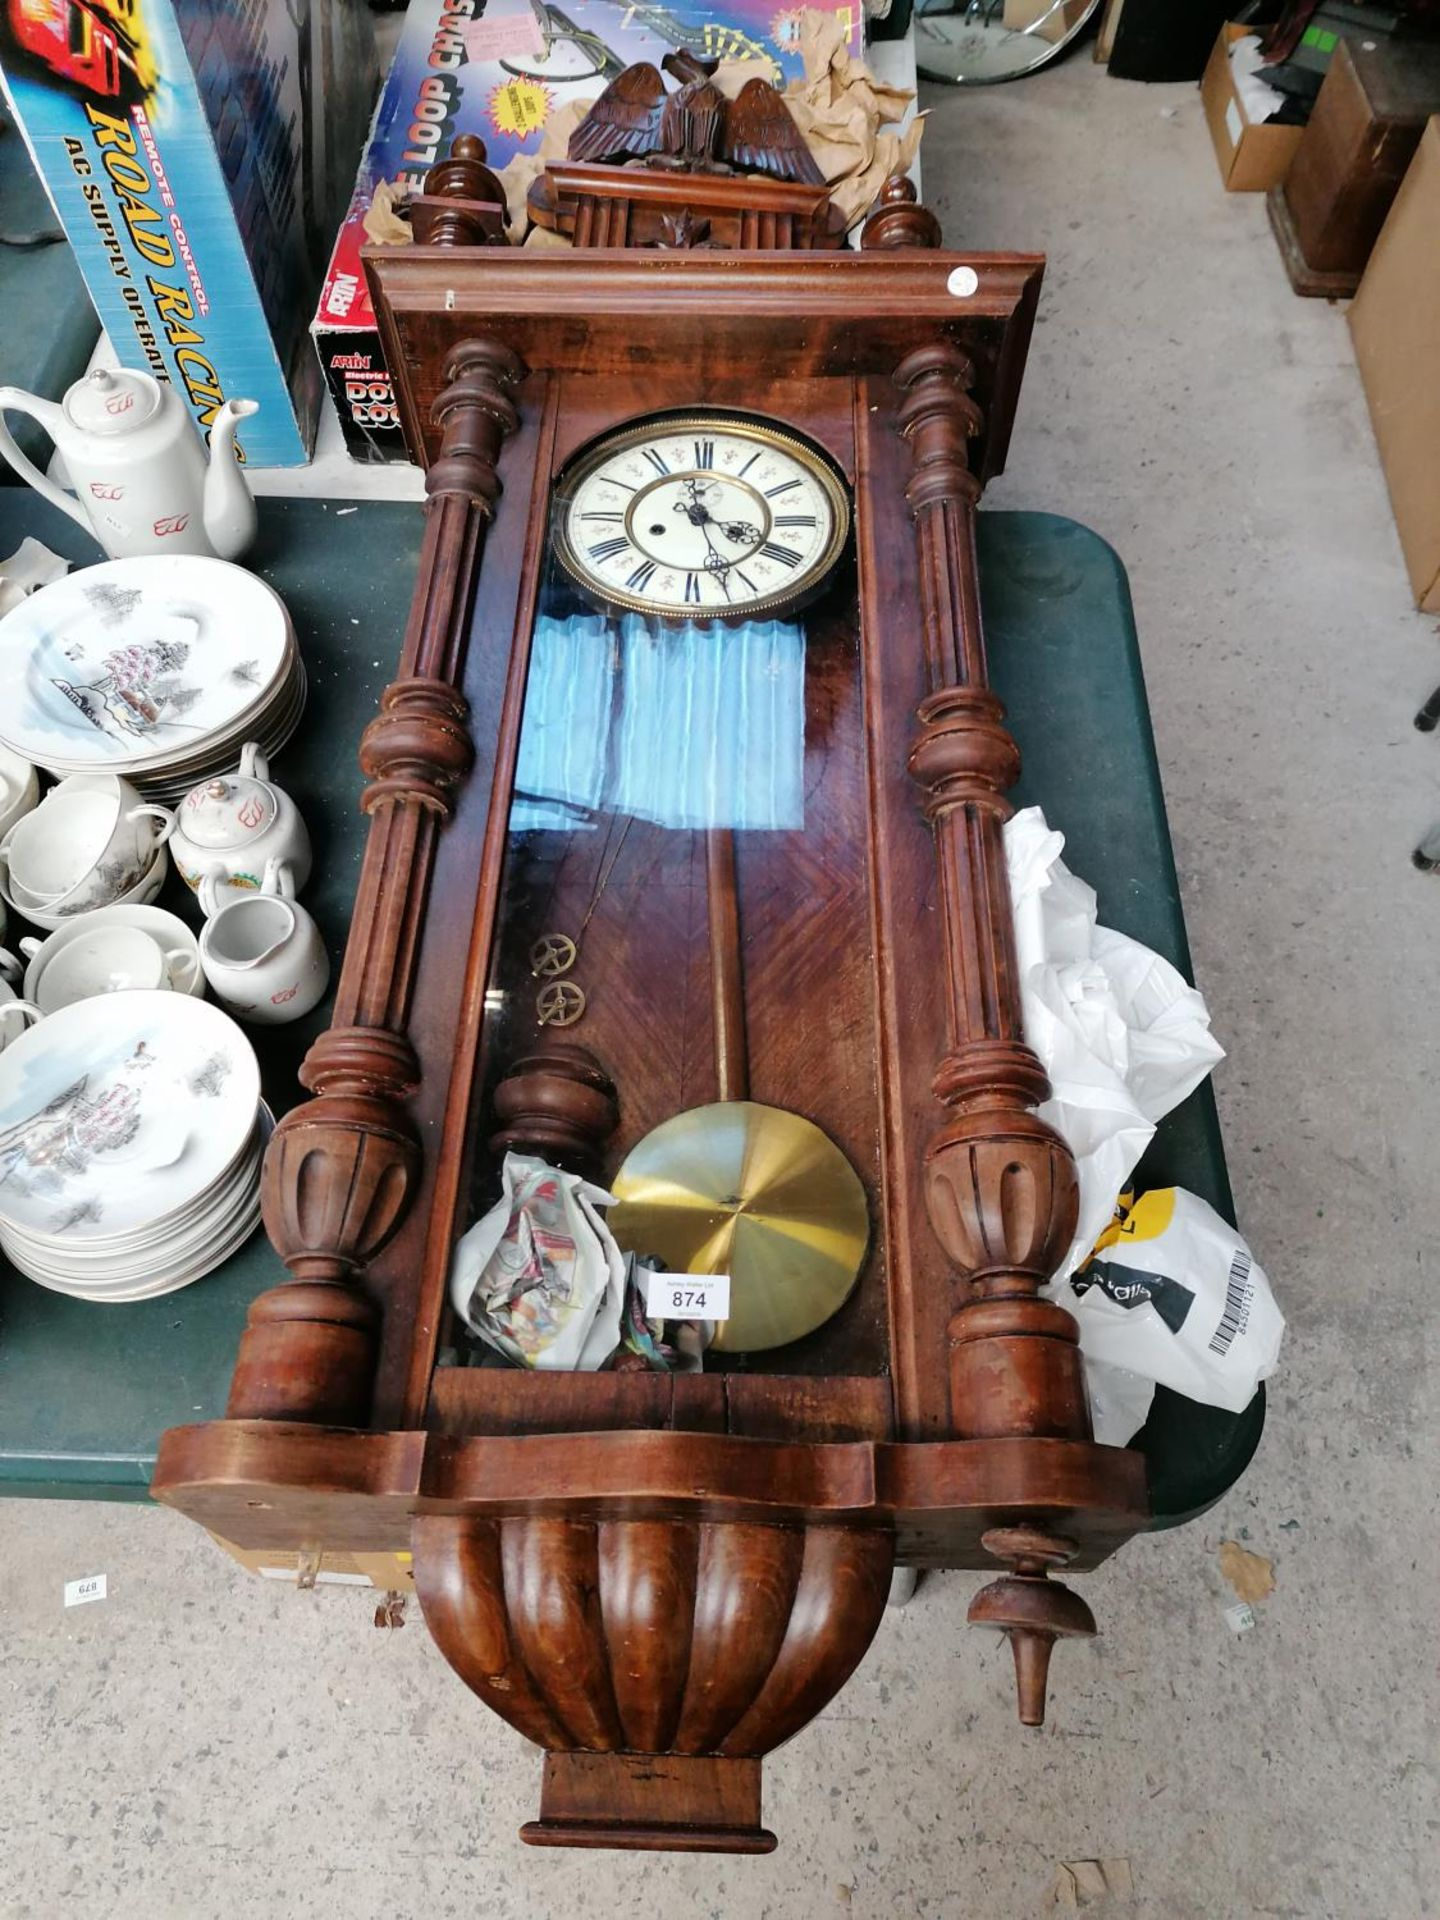 Lot 874 - A LARGE MAHOGANY VIENNA WALL CLOCK WITH PENDULUM AND WEIGHTS